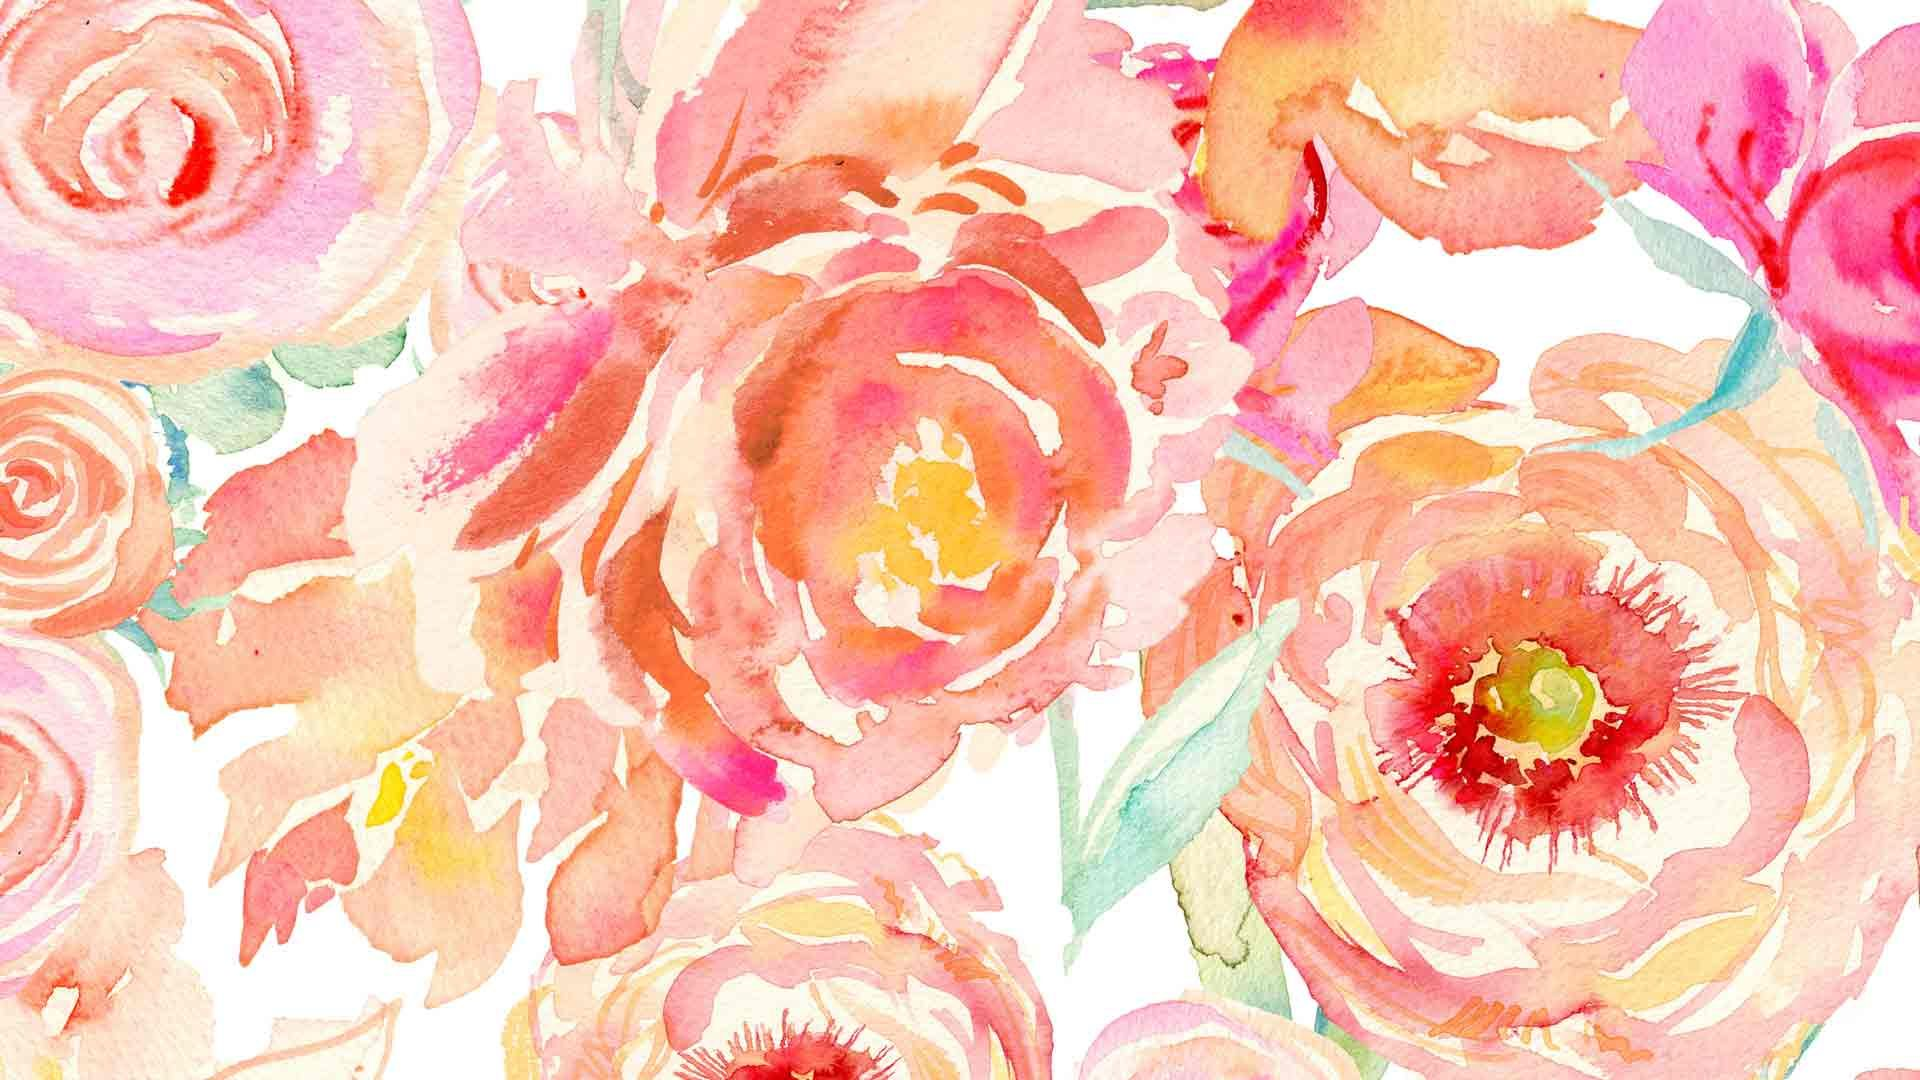 30 Free Beautiful Watercolor Wallpapers That Should Be On Your